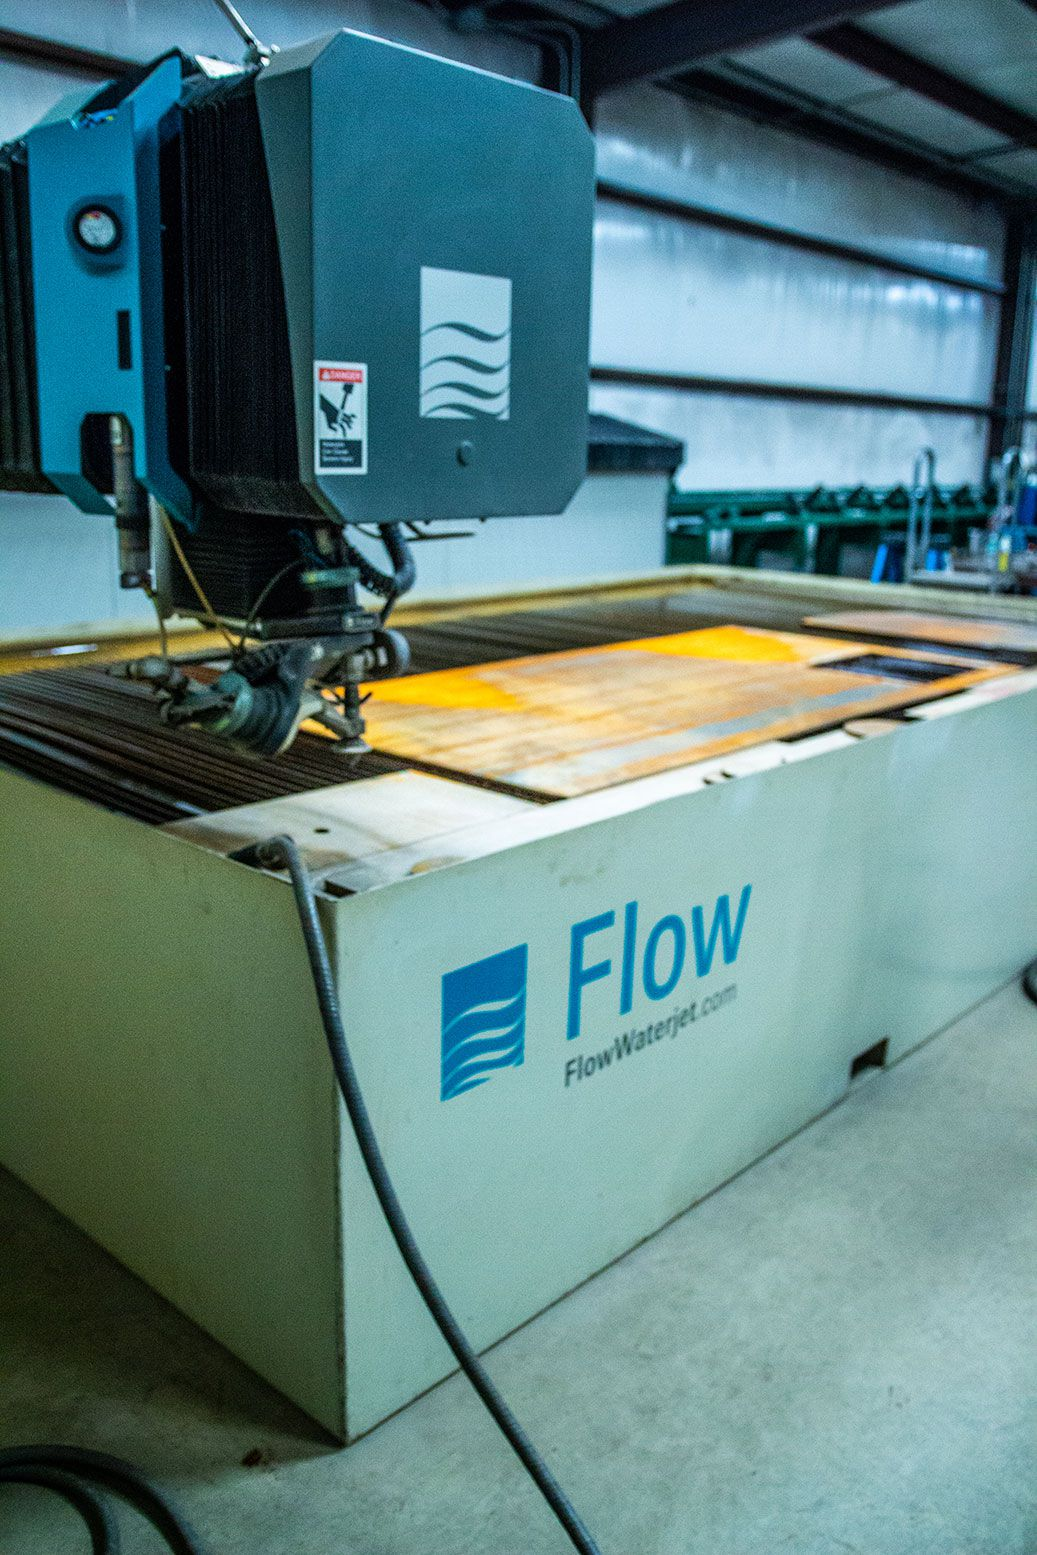 Flow Waterjet Repair | Walton Process Technologies